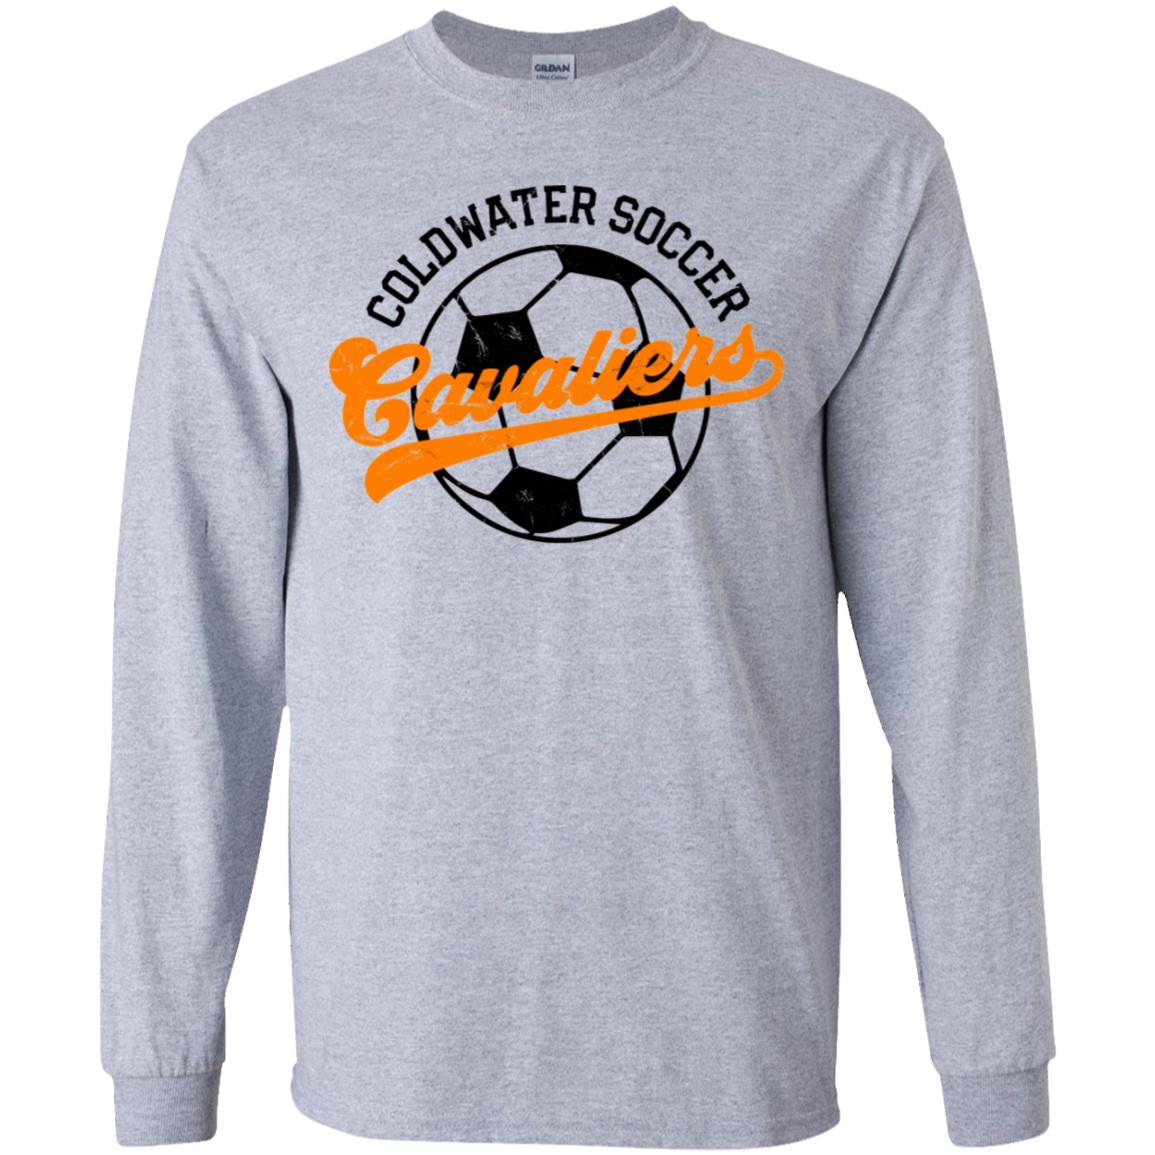 Coldwater Soccer, Youth Long Sleeve T-Shirt